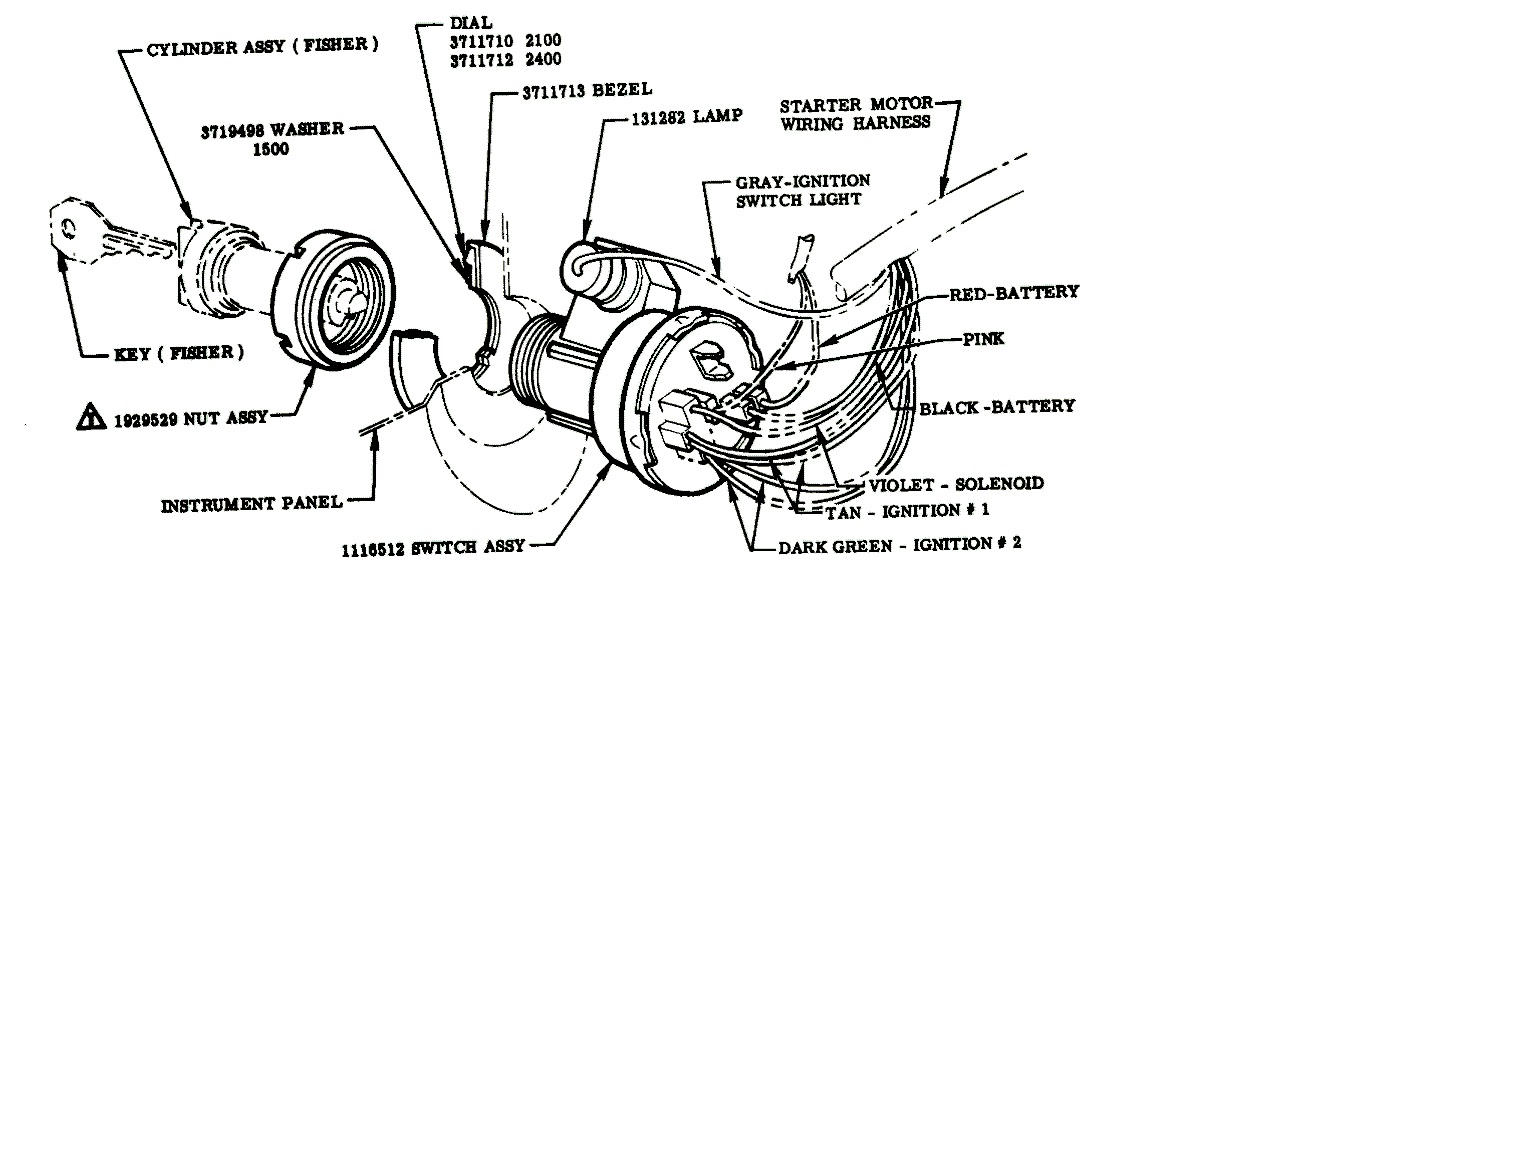 ford hei distributor wiring diagram ford ignition coil diagram 1955 chevy ignition switch wiring diagram at alyssarenee.co